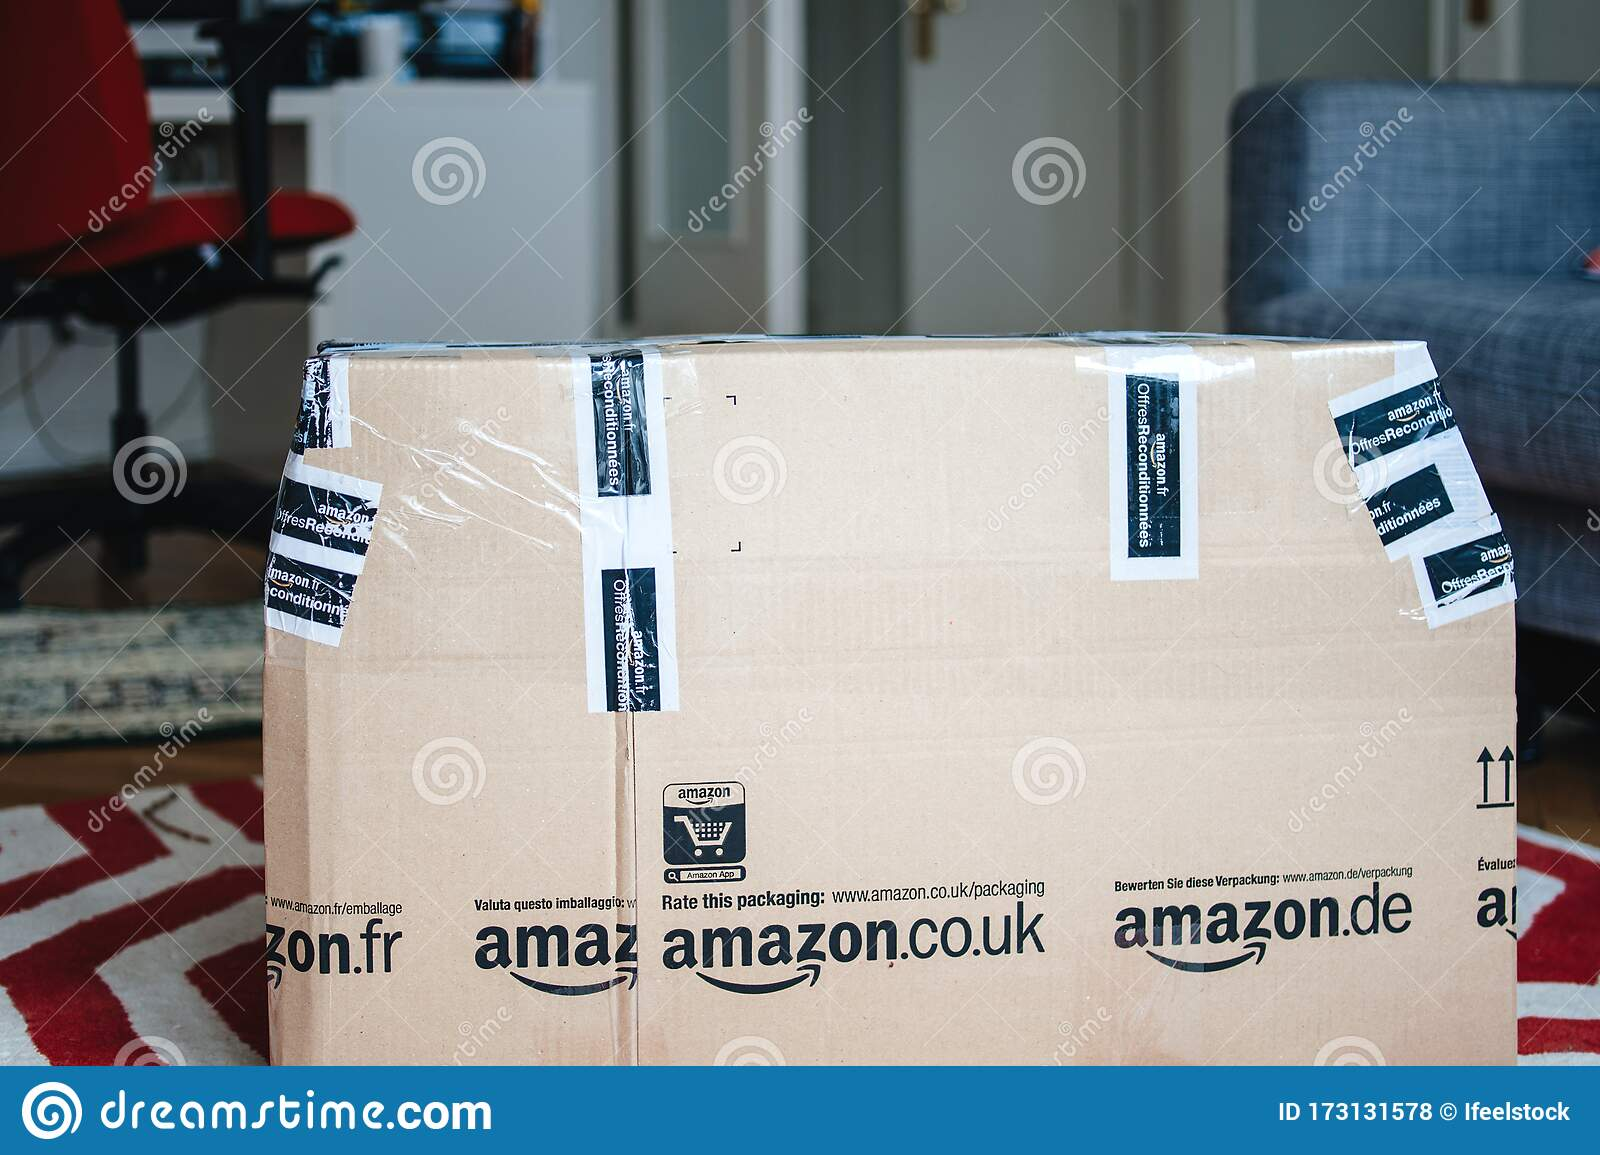 Warehouse Deals Photos Free Royalty Free Stock Photos From Dreamstime